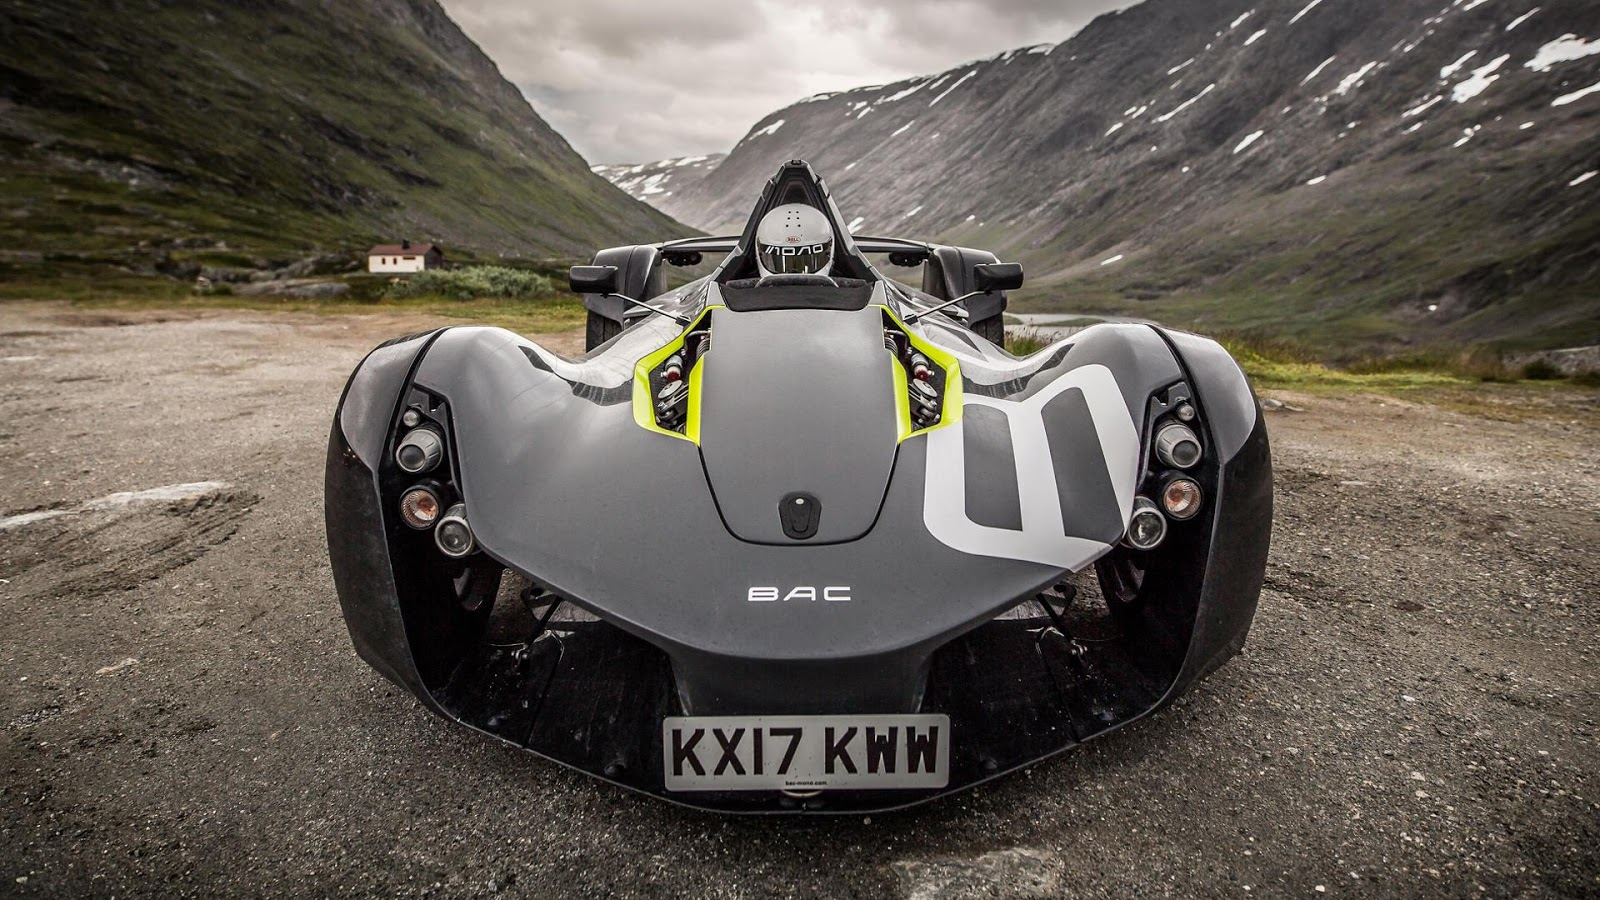 bac mono goes for a wondrous scandinavian road trip carscoops. Black Bedroom Furniture Sets. Home Design Ideas